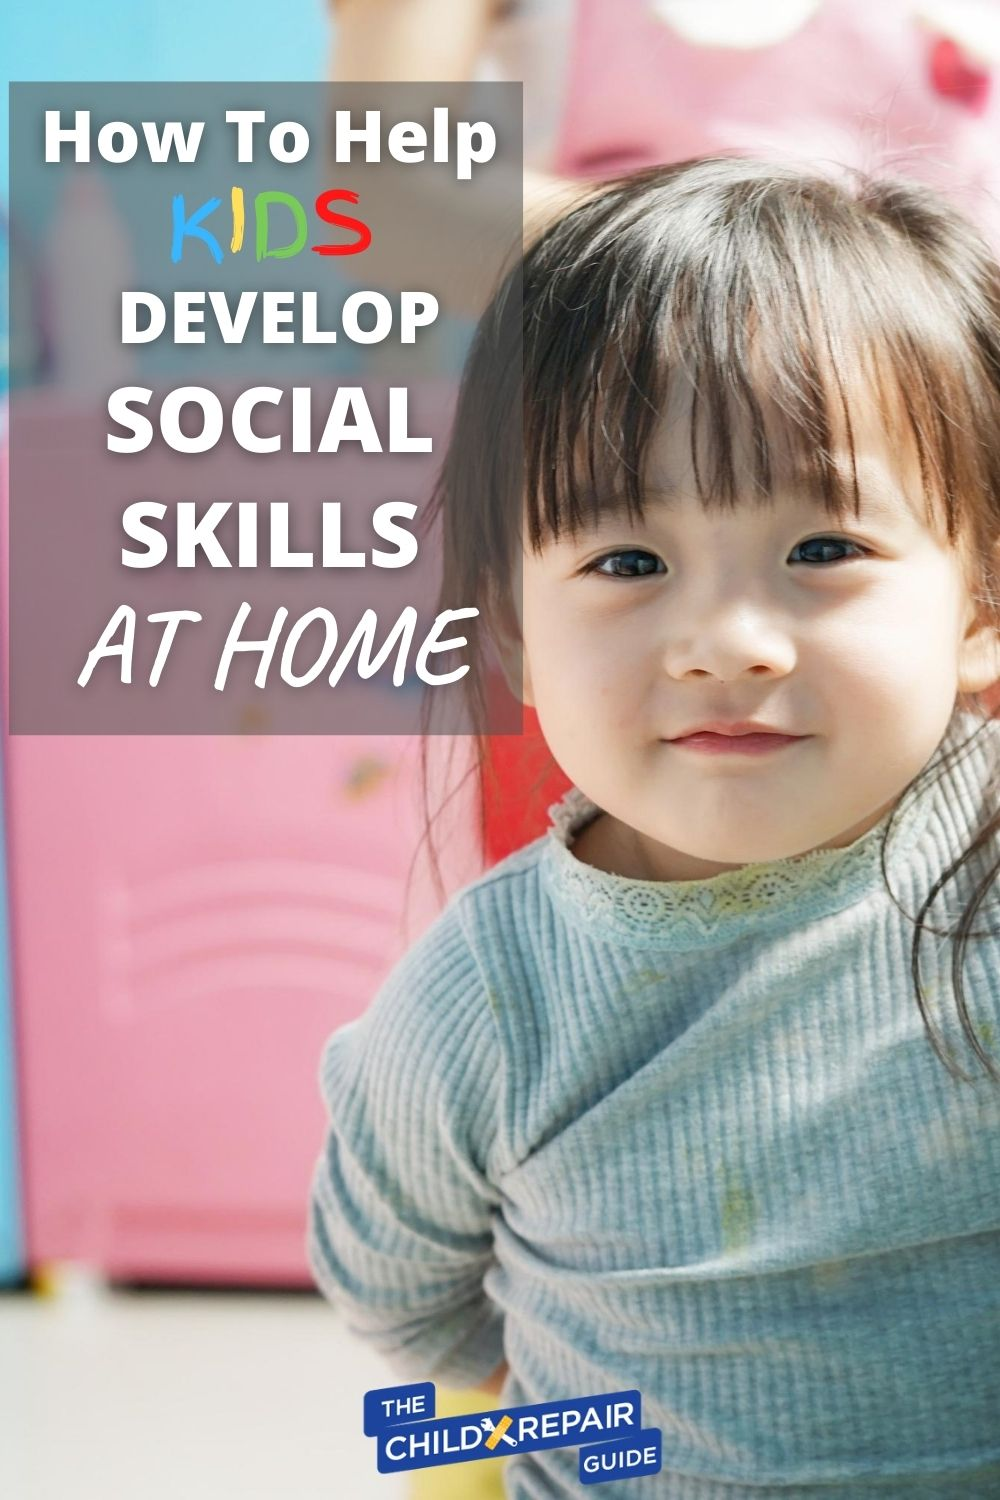 How to Help Kids Develop Social Skills at Home